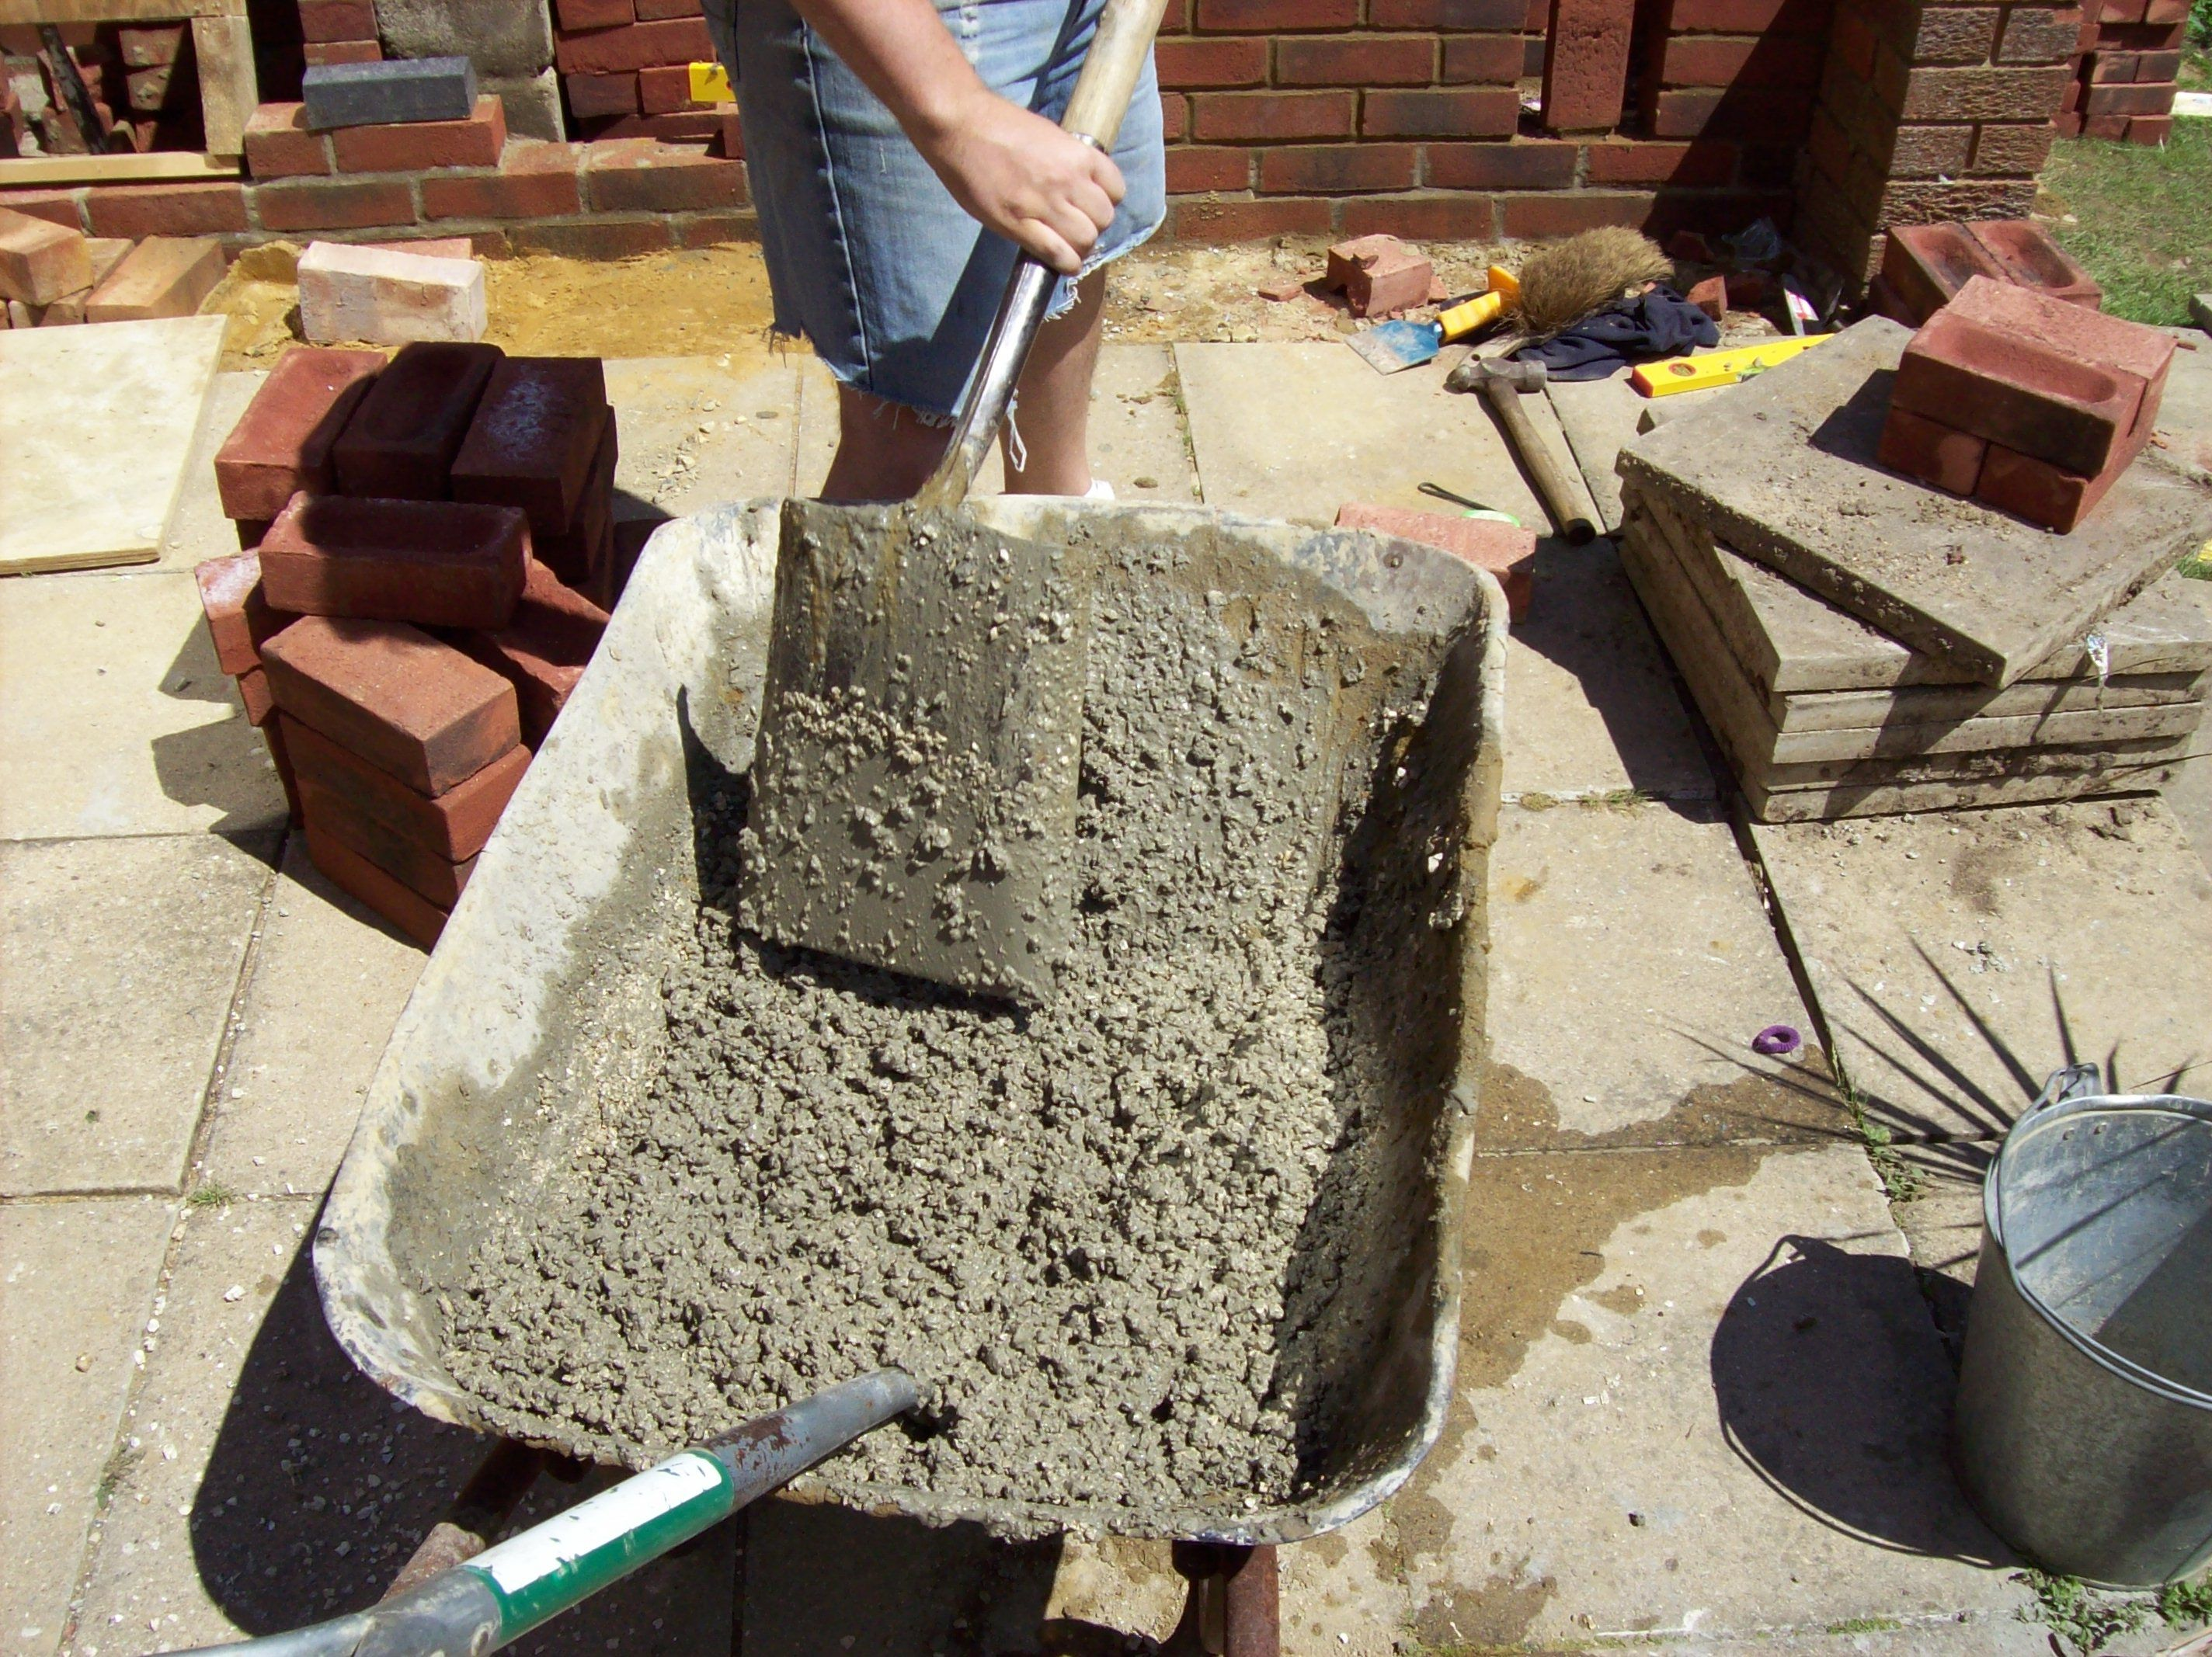 Mixing Vermiculite And Cement To Make The Insulating Layer To Go On Top Of The Concrete Slab Thi Vermiculite Insulation Wood Fired Pizza Wood Fired Pizza Oven